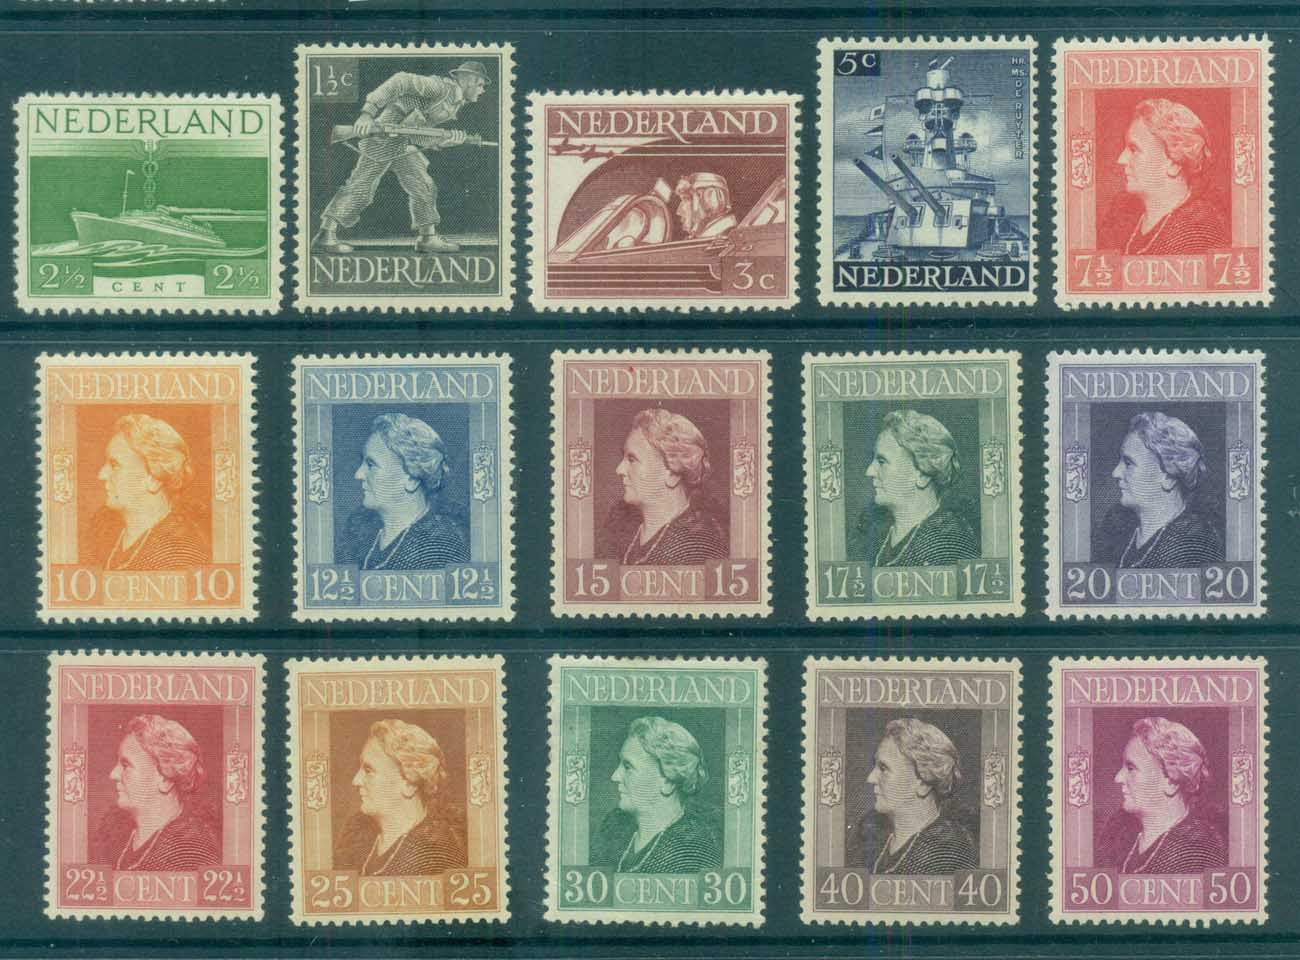 Netherlands 1944-46 Pictorials MLH lot76636